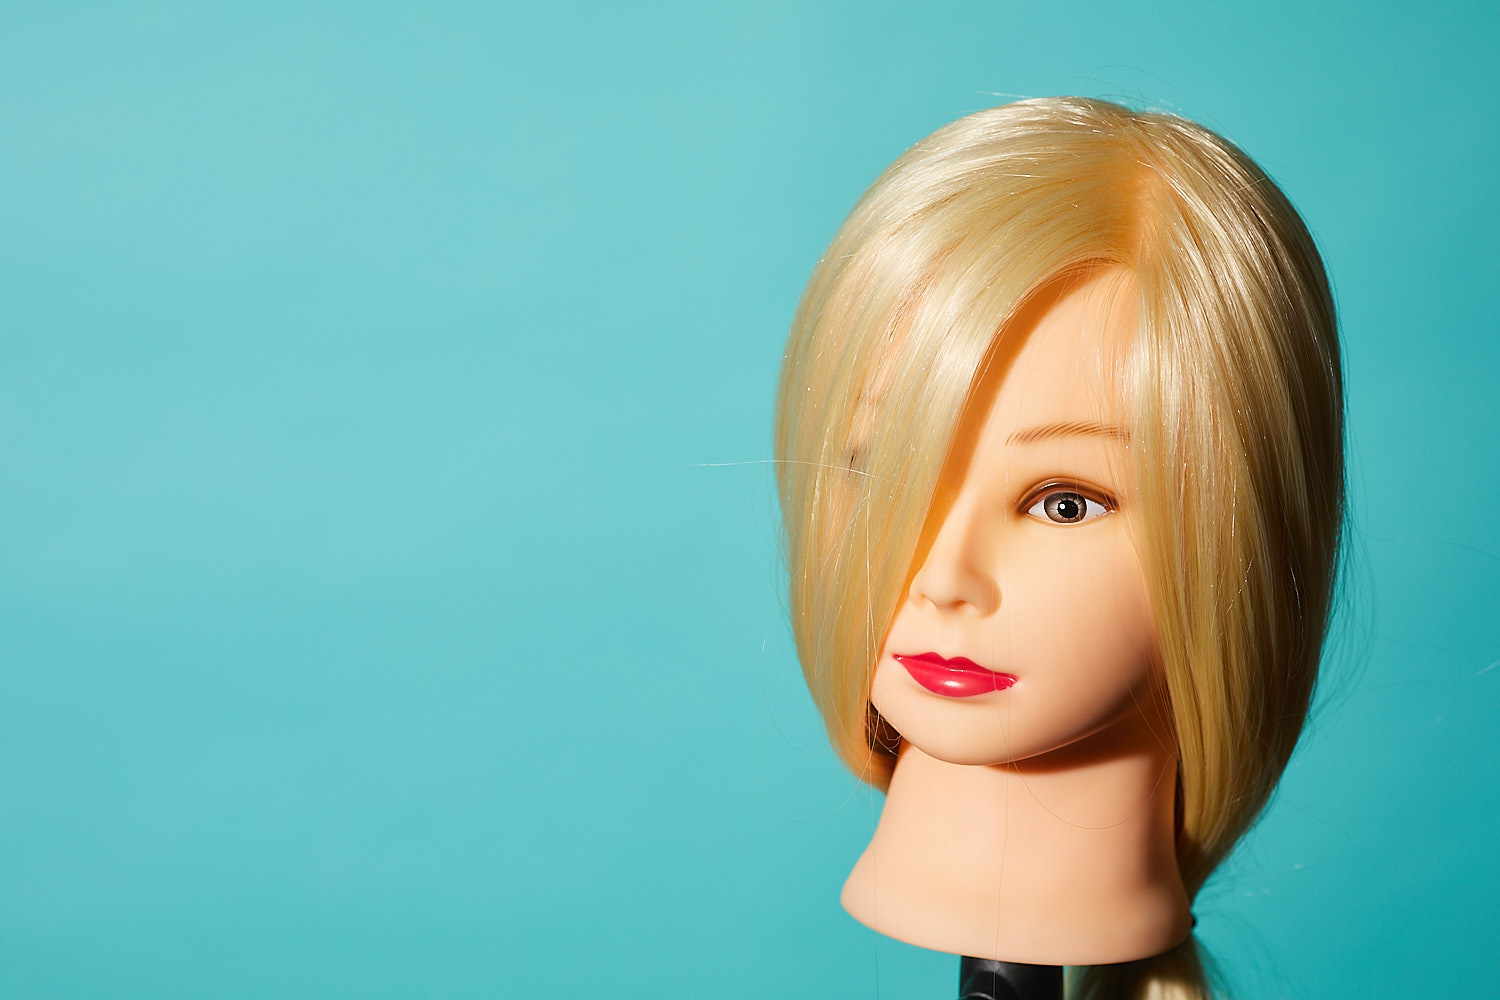 A dolls head against a plain background exposed correctly